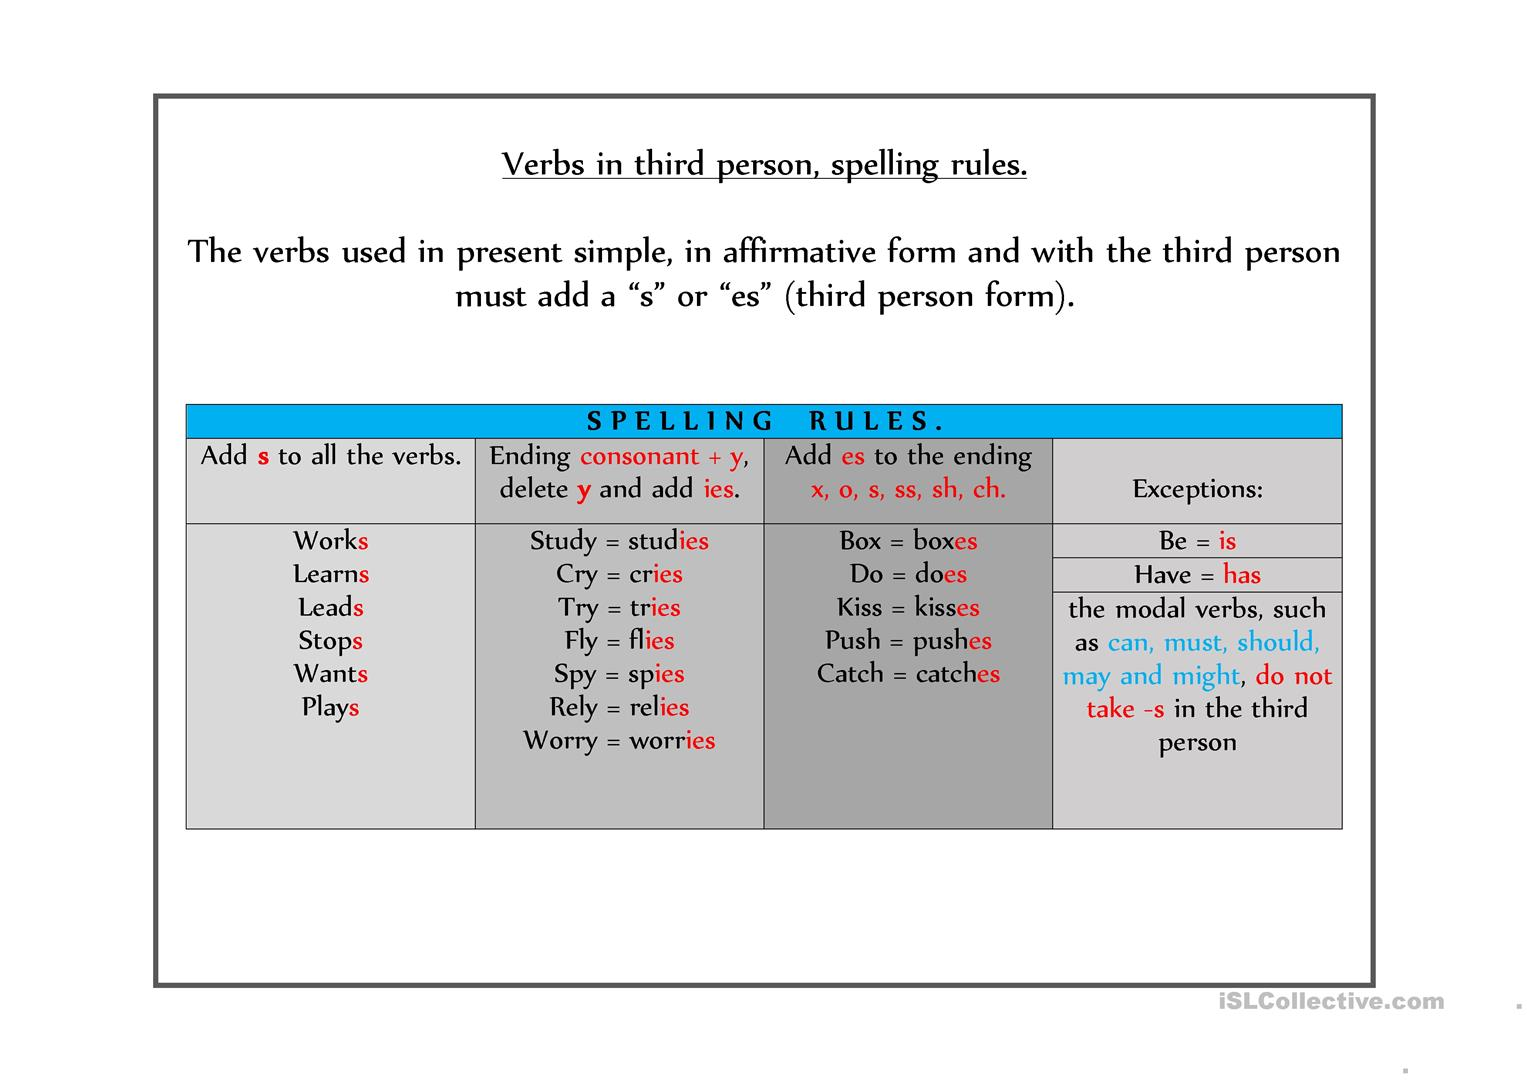 Third Person Verbs Spelling Rules Worksheet